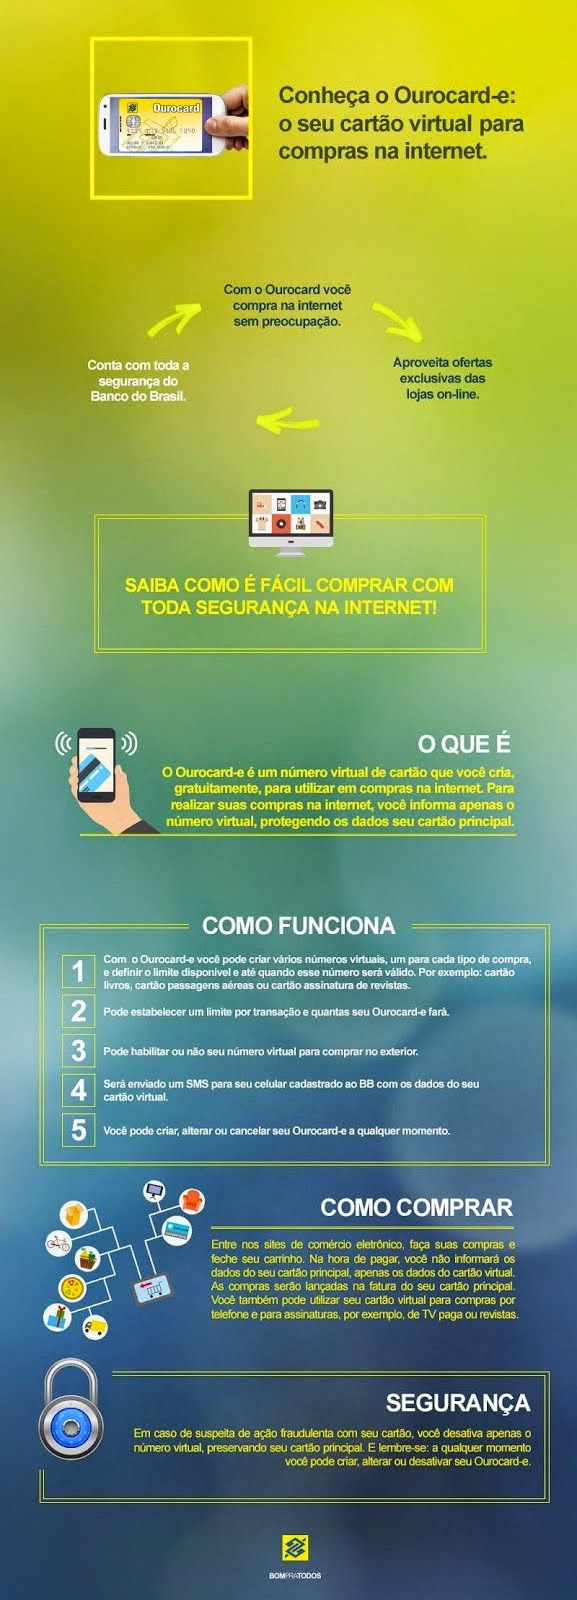 ourocard-e banco do brasil cartao virtual